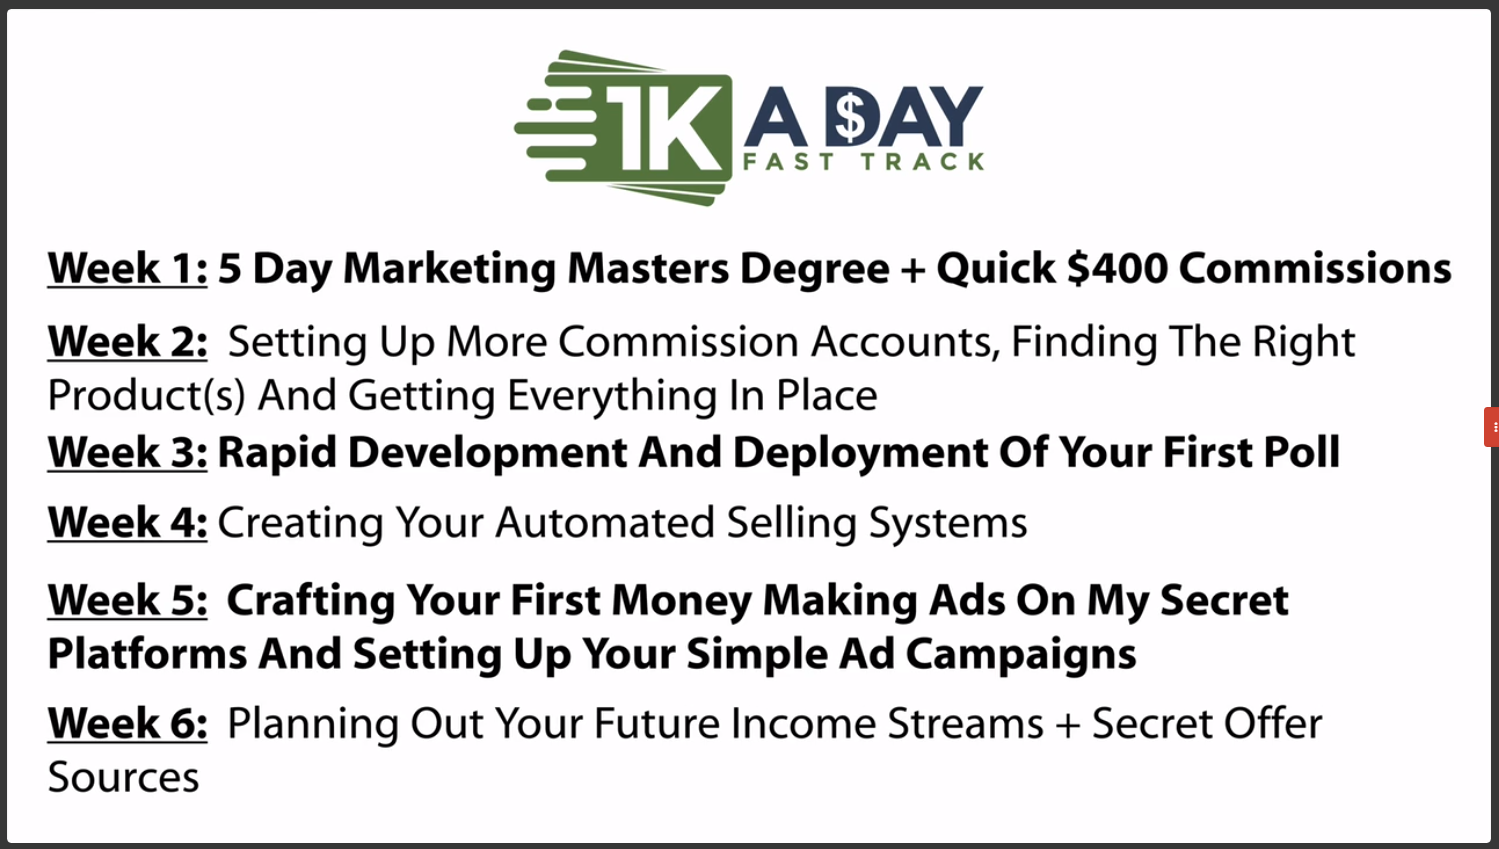 Training Program 1k A Day Fast Track  Teacher Discounts 2020